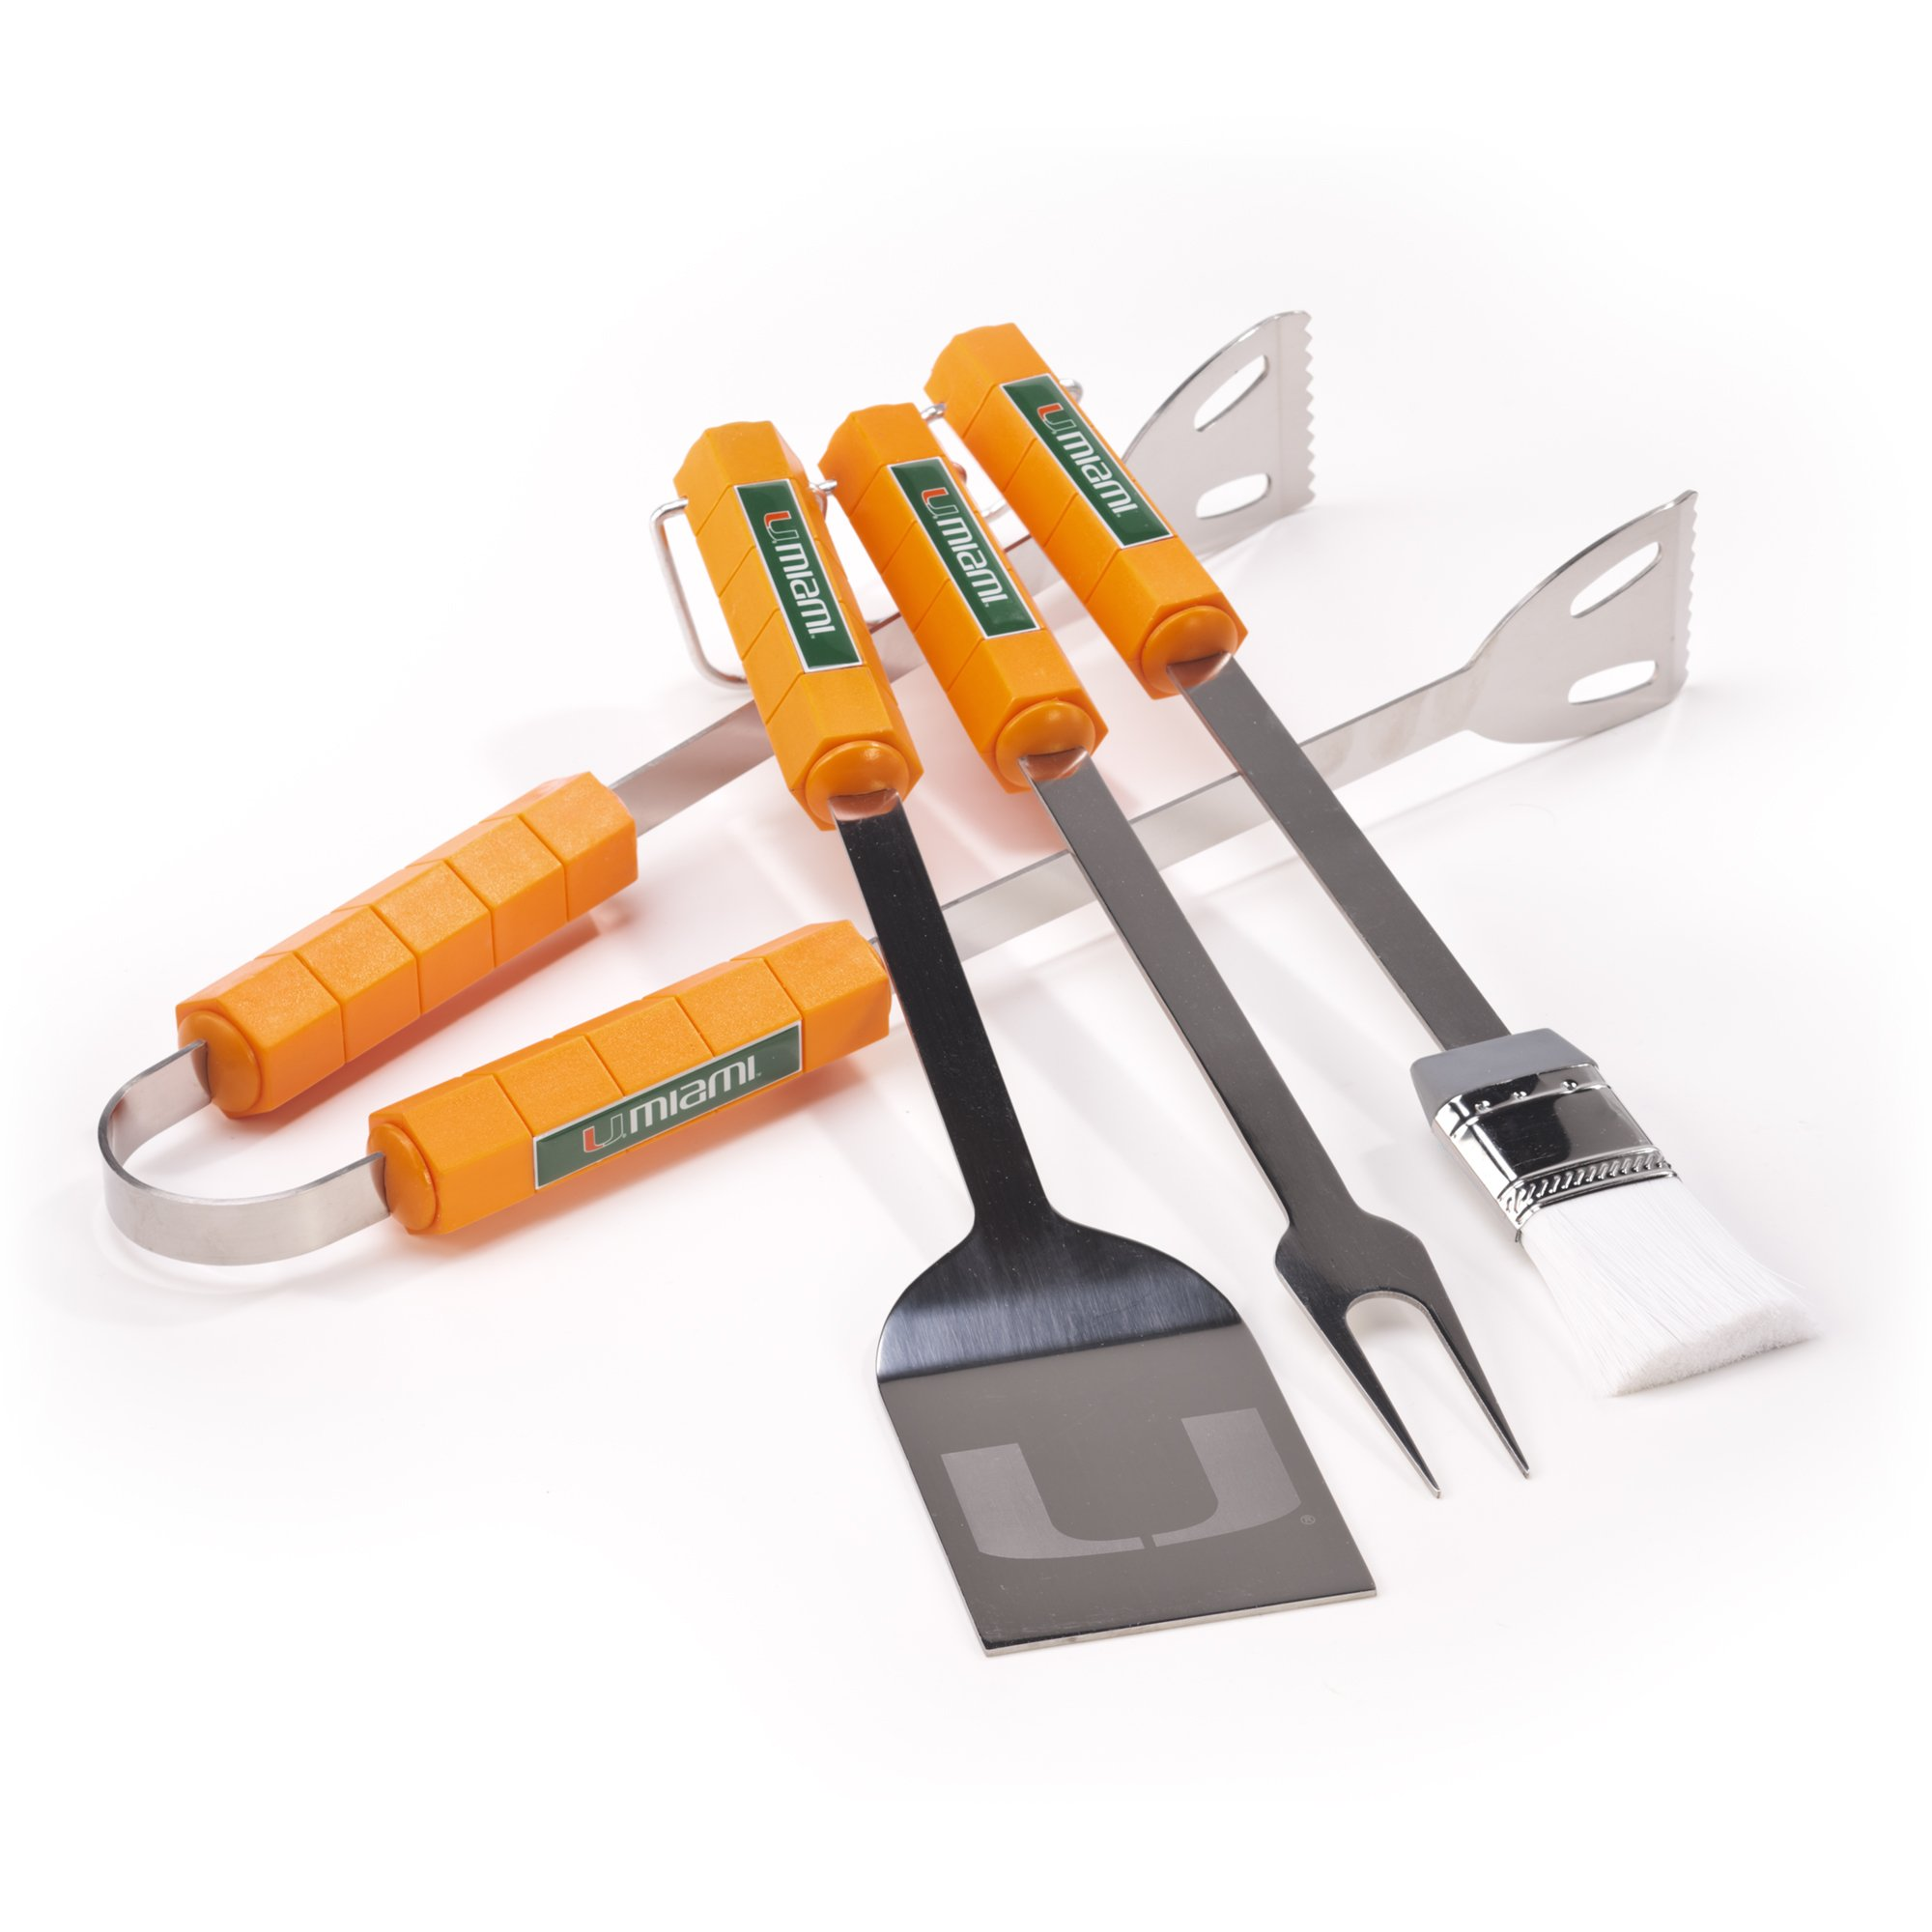 NCAA Miami Hurricanes 4 Piece Barbecue Set by BSI (Image #1)